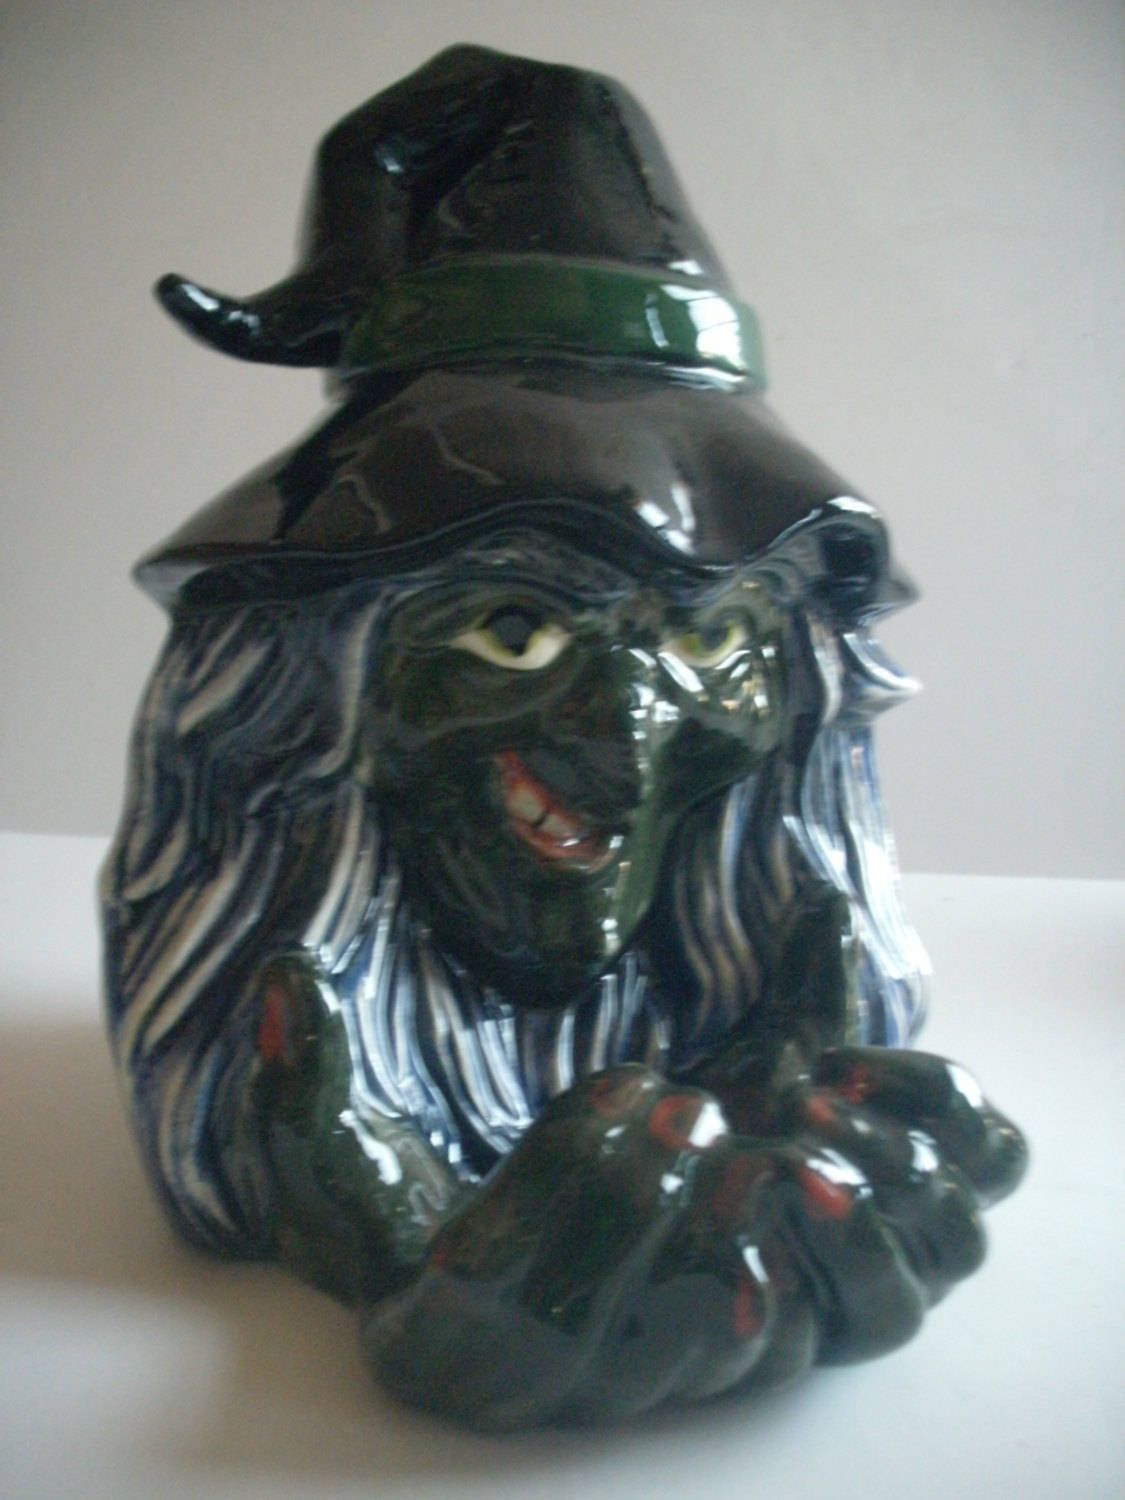 Green witch Halloween decoration witch candy dish Halloween decor - Halloween Decorations For The Office